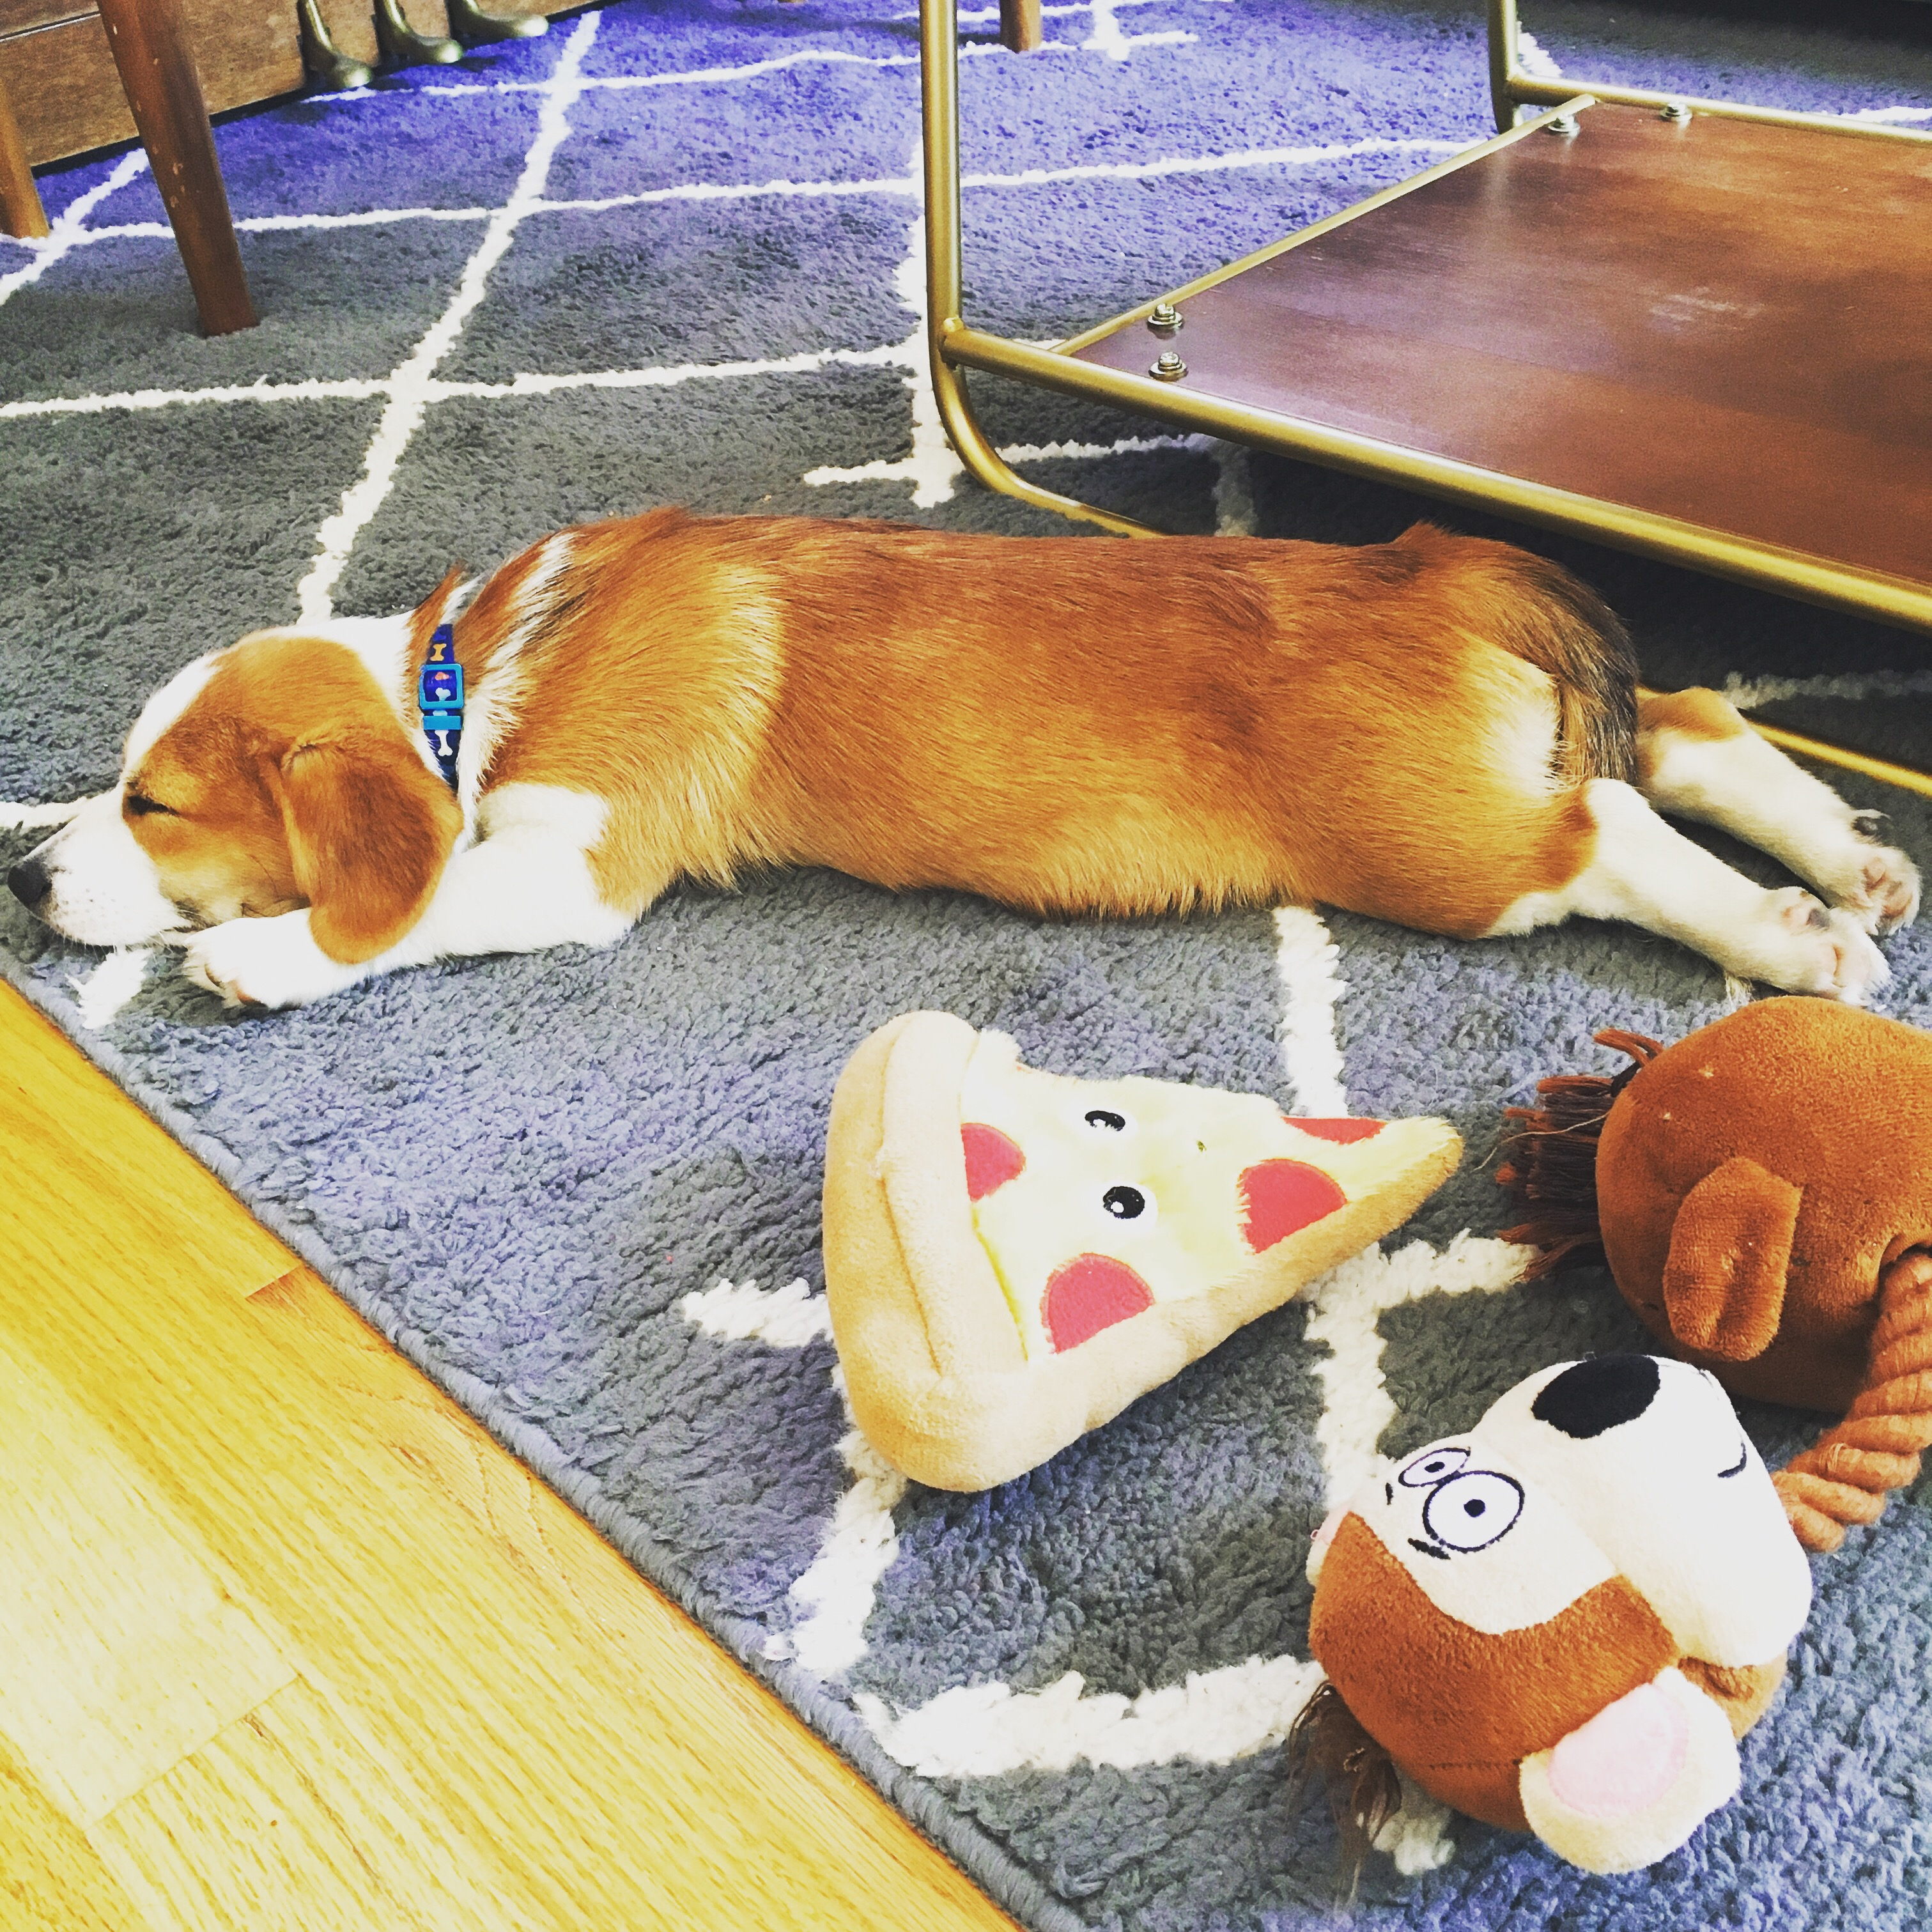 Butter sleeps with pizza and monkey toy